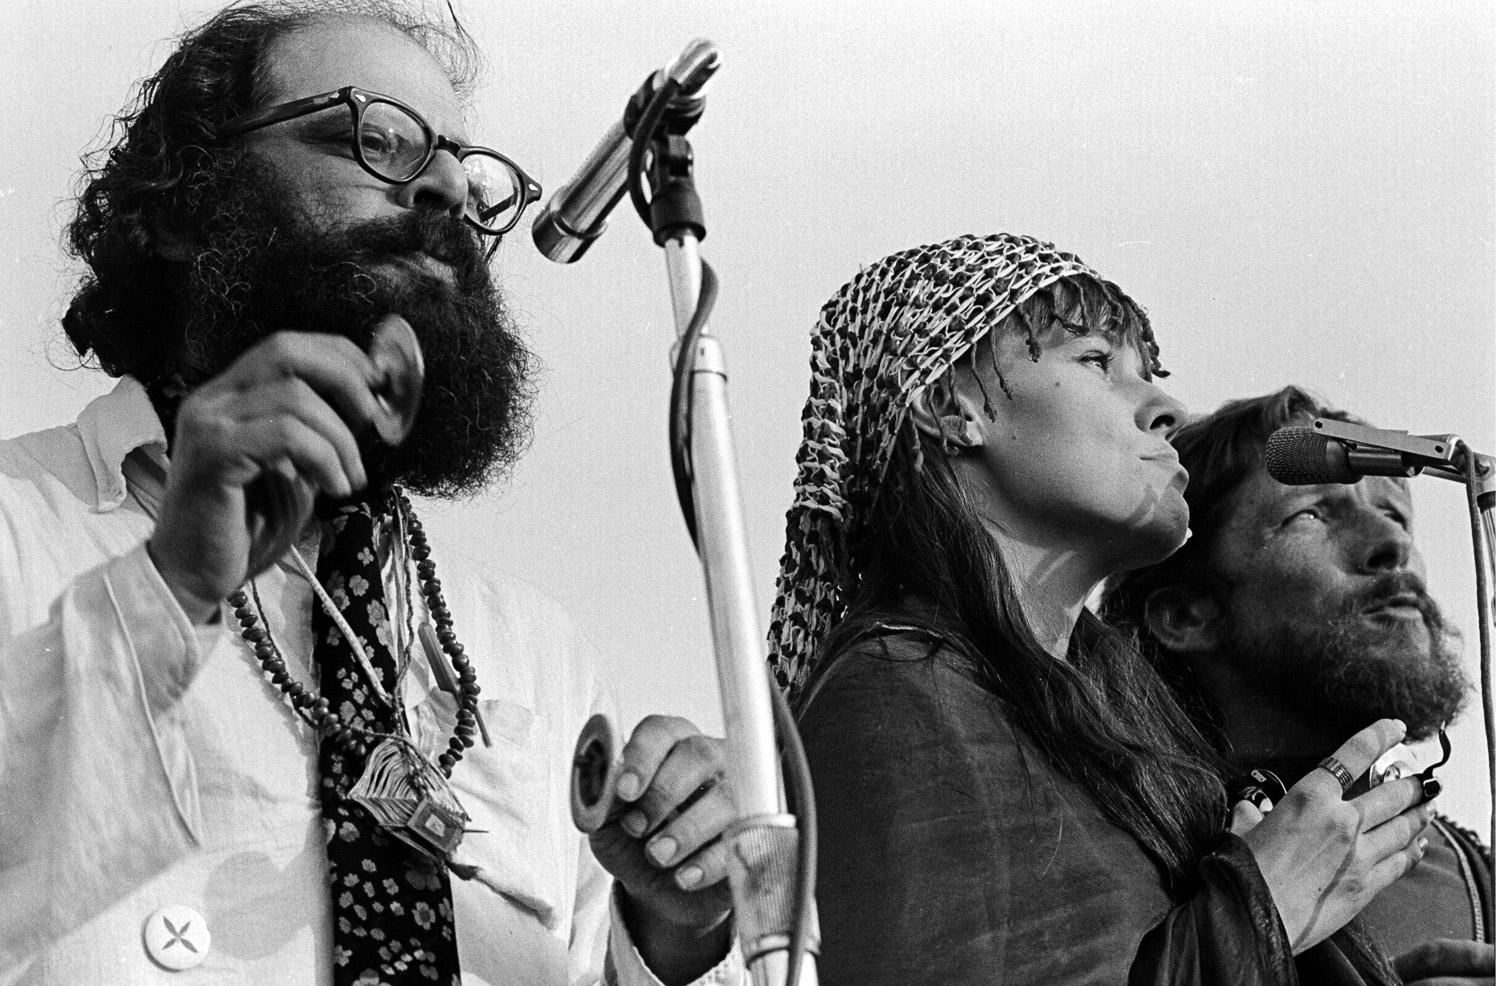 Allen Ginsberg  (left),  Maretta Greer (center) and  Gary Snyder  (right) read poetry and chant a mantra to peace at the Human Be-In.